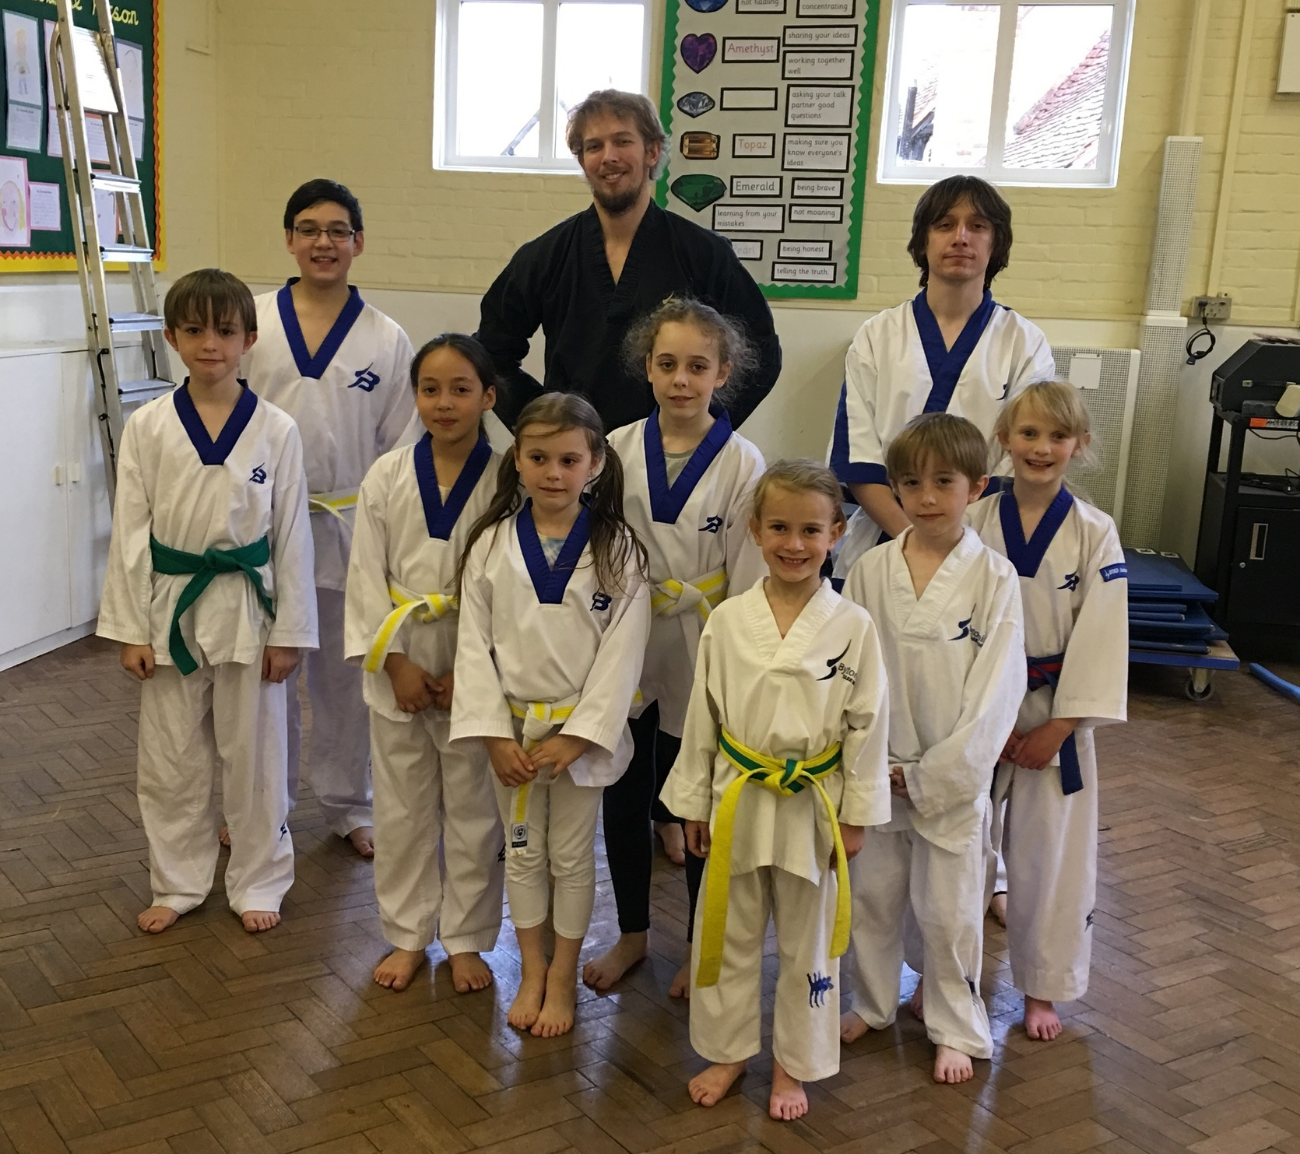 Welcome to our Chalfonts club! Train with us on Tuesdays at Robertswood School (6.45pm) and Thursdays at Chalfont St Giles Infant School (6.45pm)